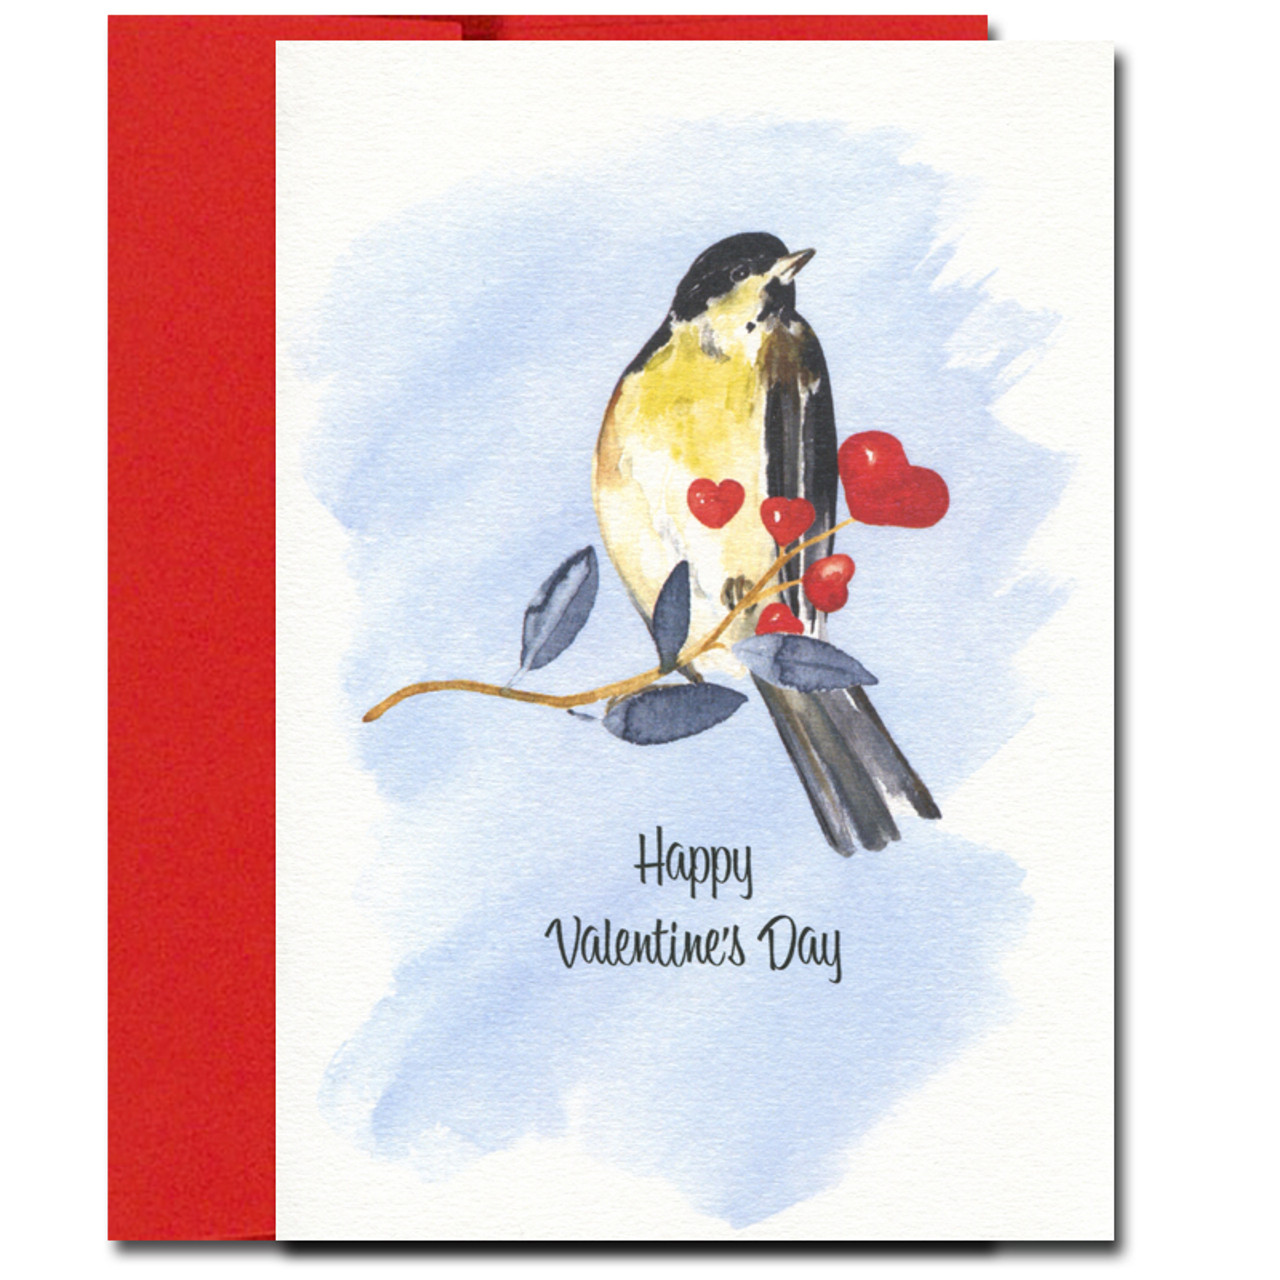 Songbird Valentine shows a bird with a yellow breast perched on a branch blooming with hearts